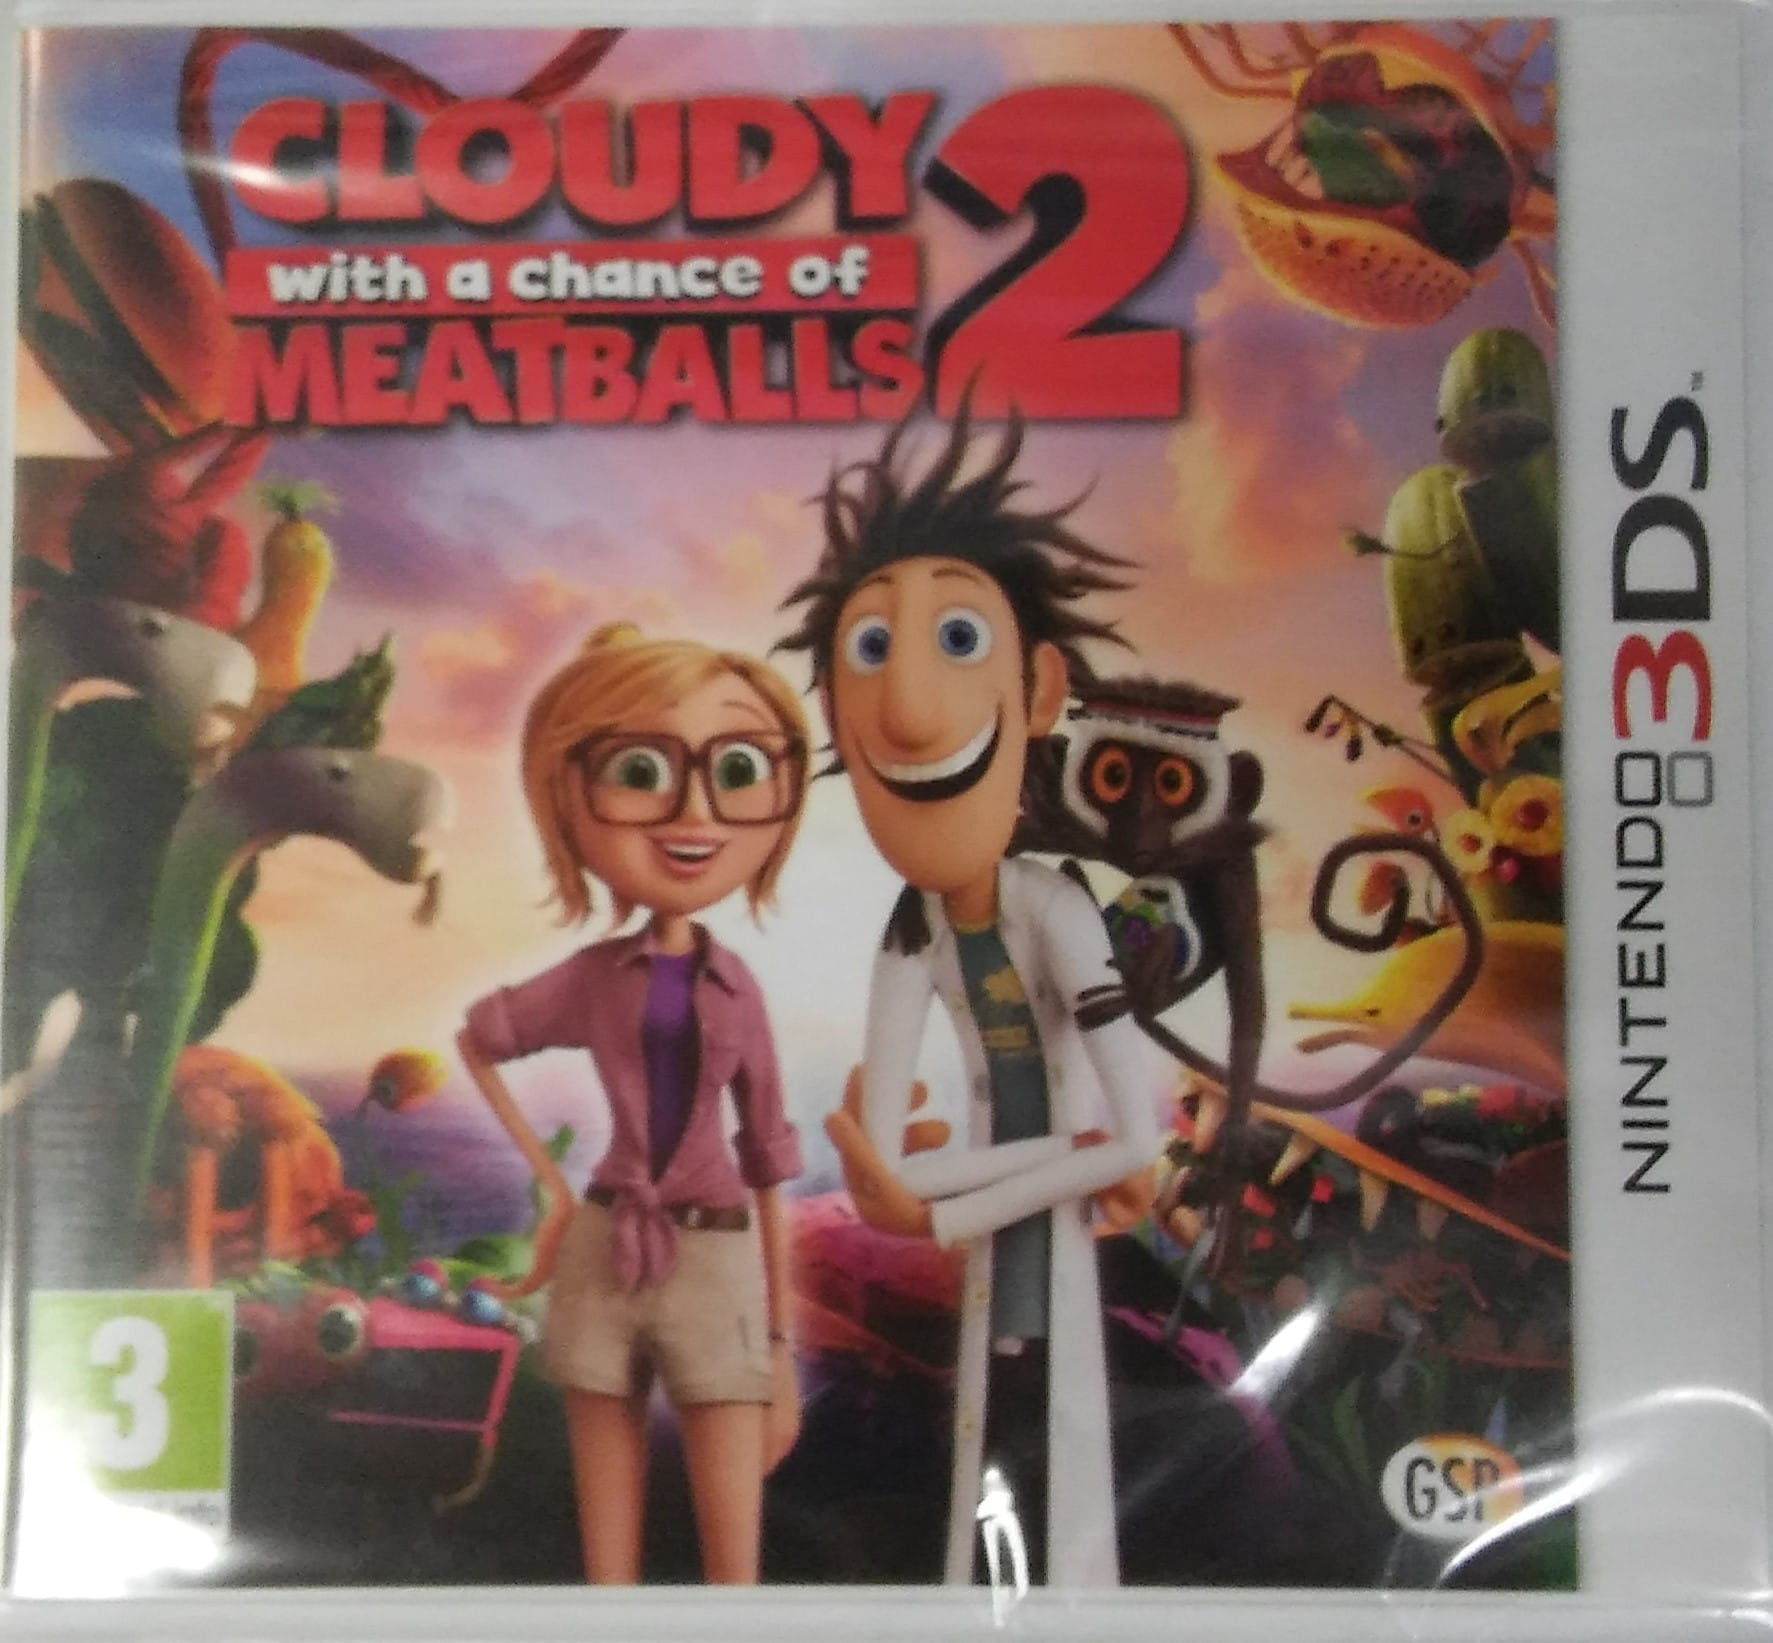 Gra Cloudy with a chance of Meatballs 2 (3DS)